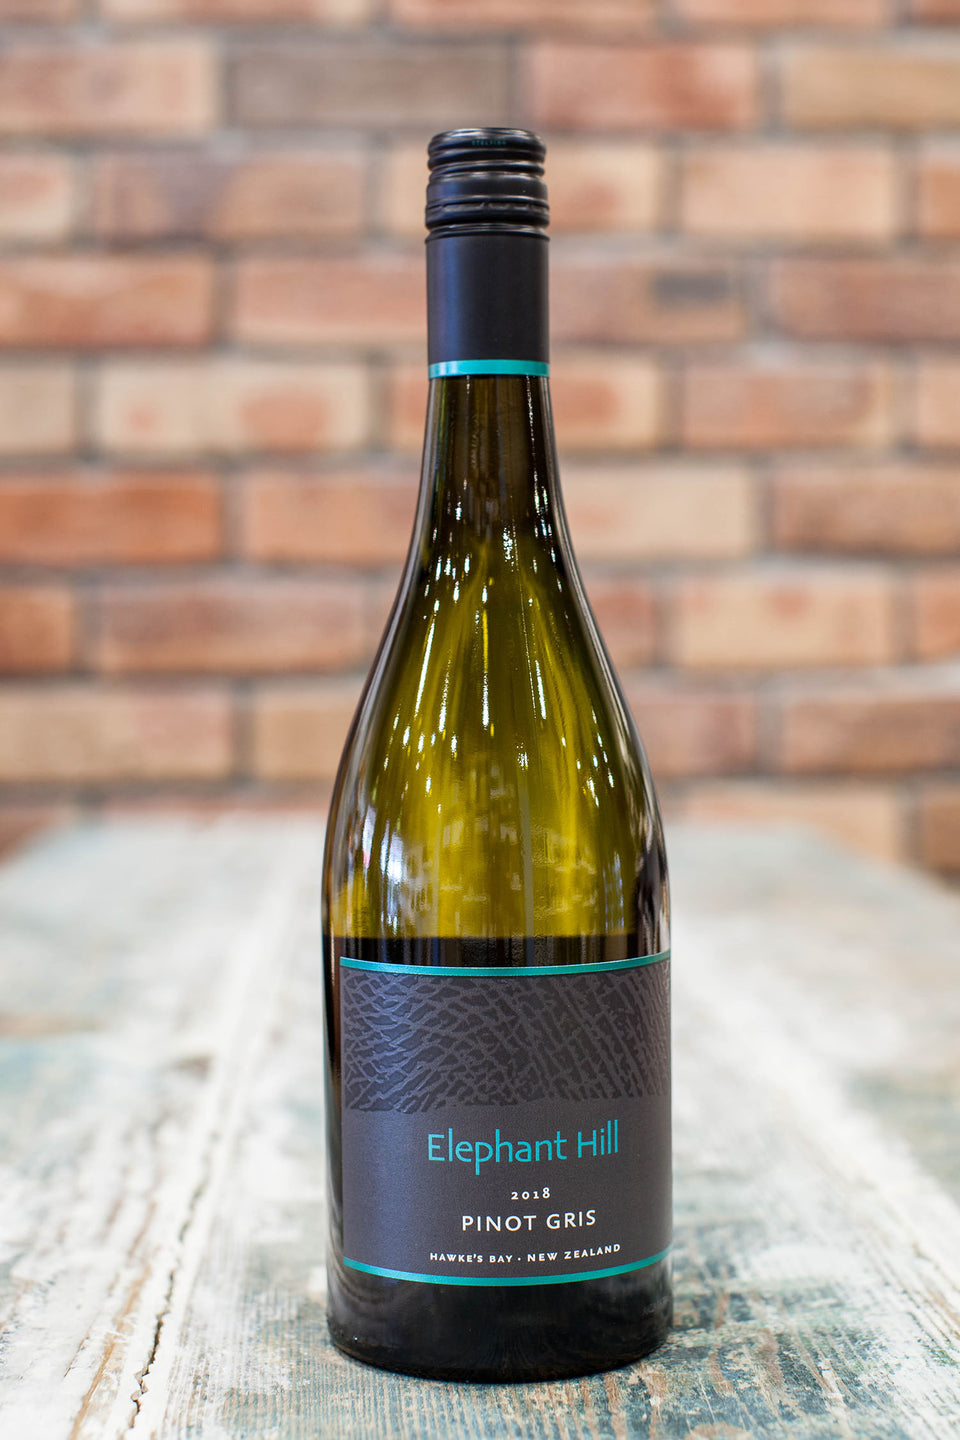 2018 Elephant Hill Pinot Gris, Hawke's Bay